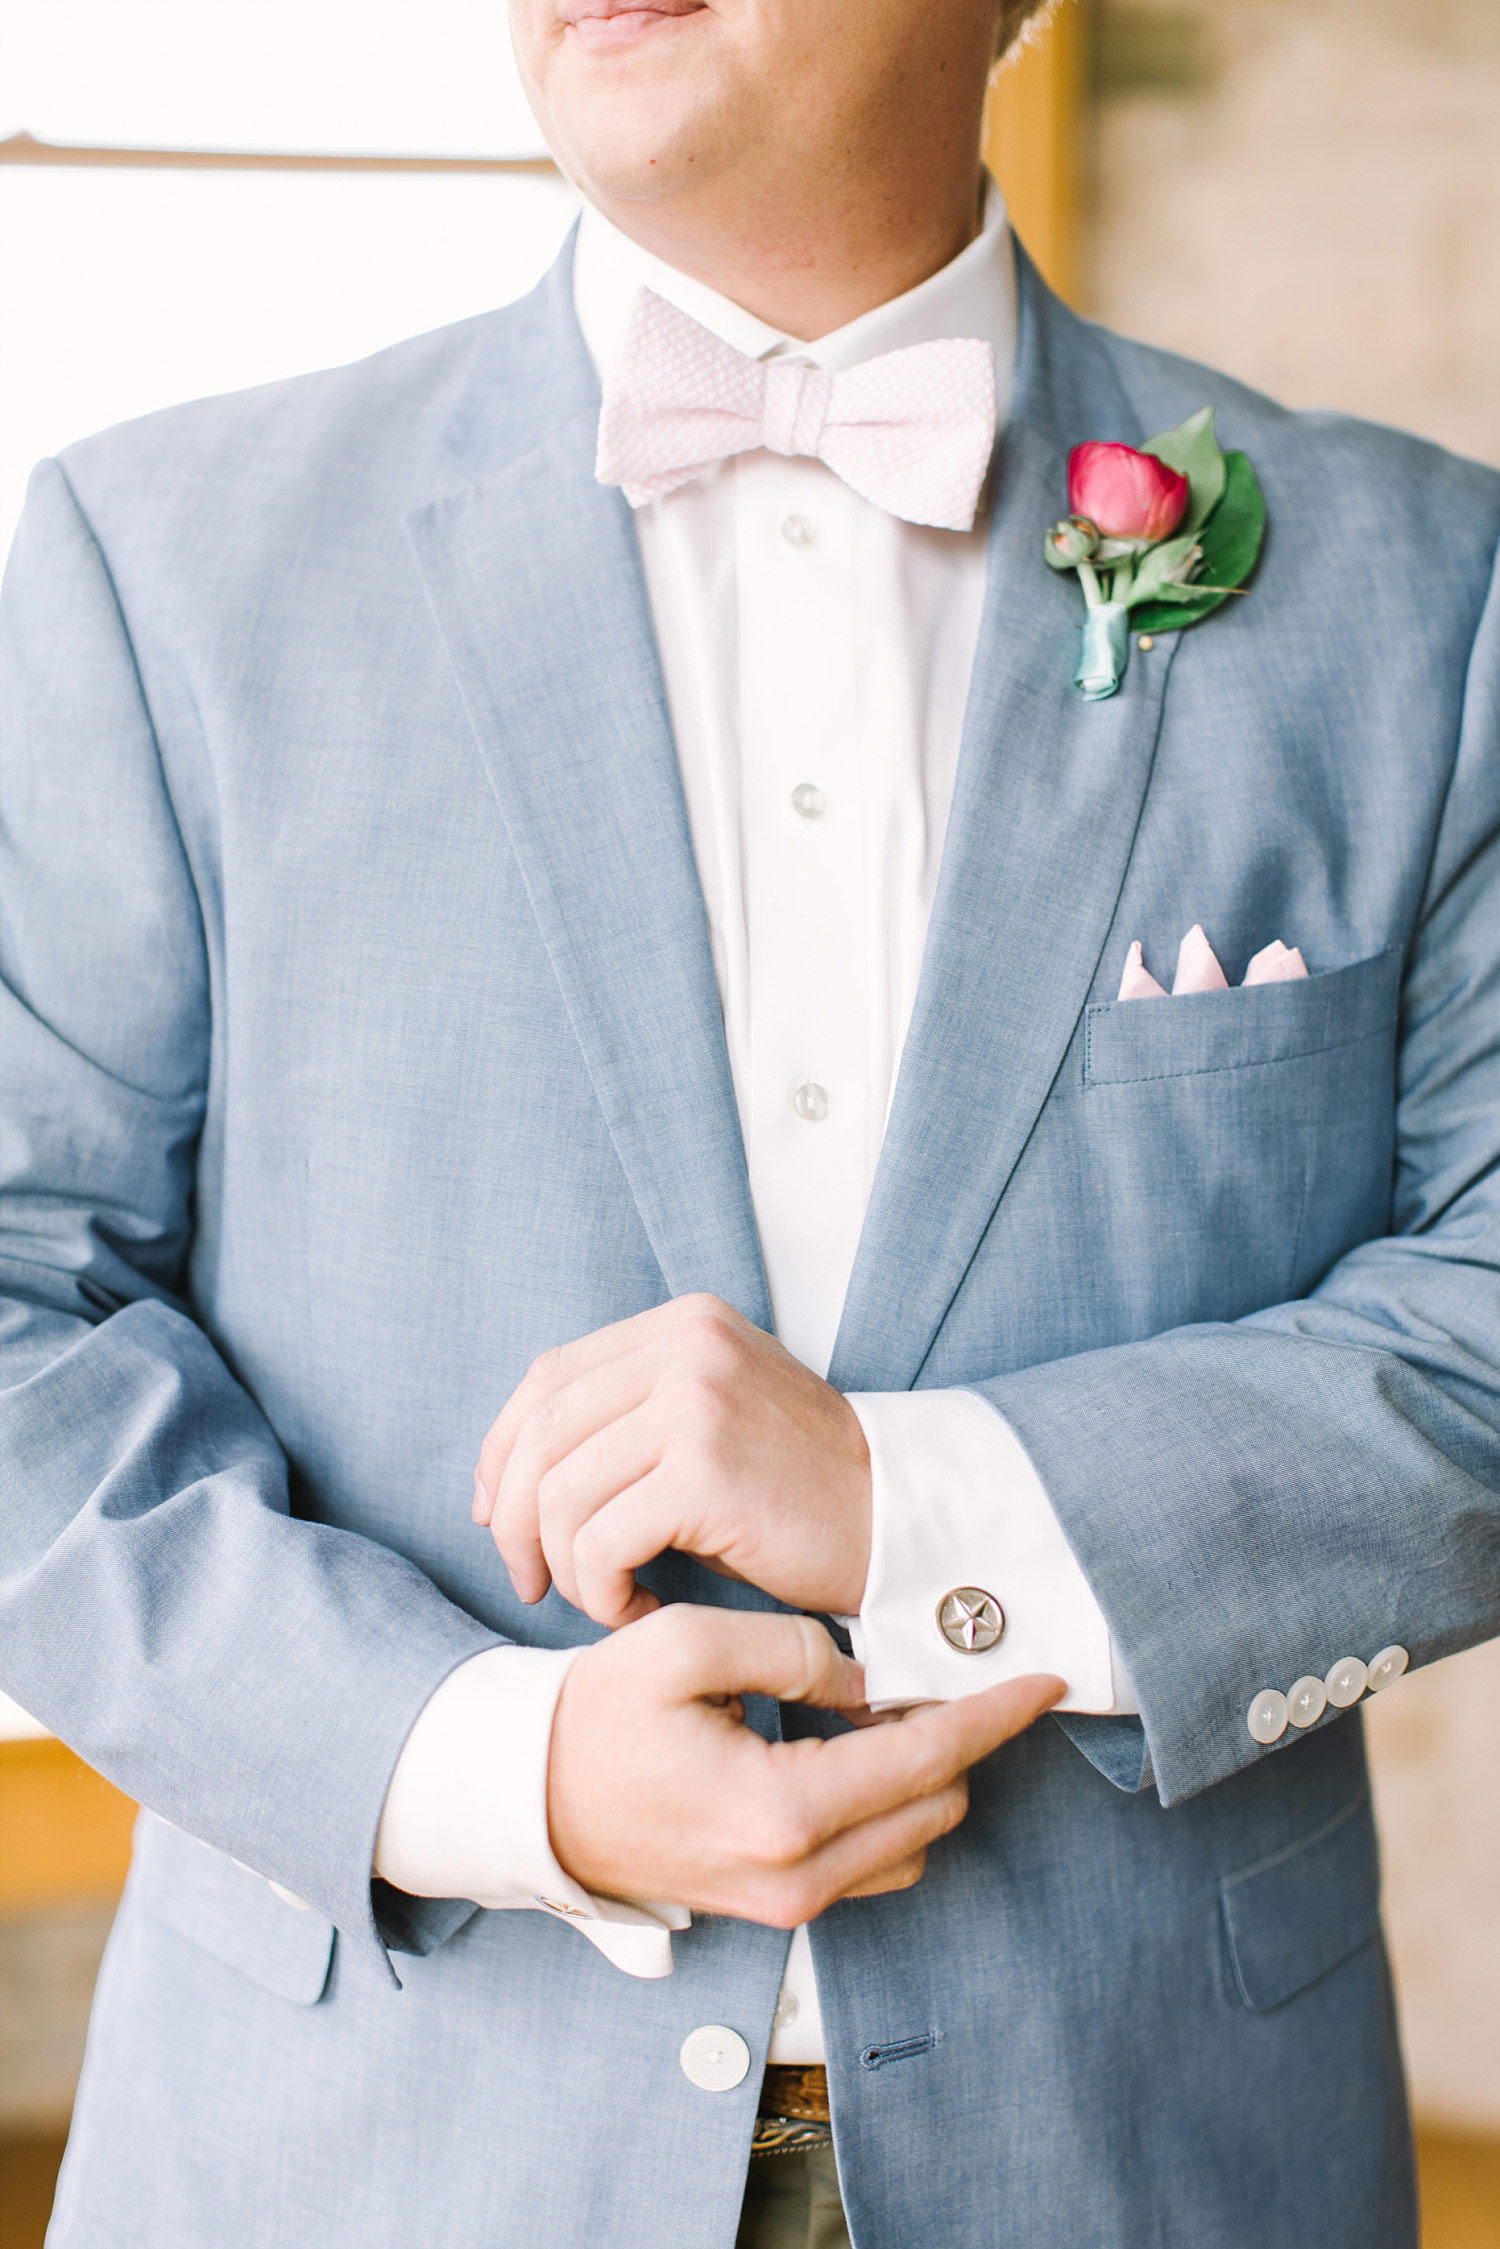 Groom where a light blue jacket, bowtie and pink boutonniere